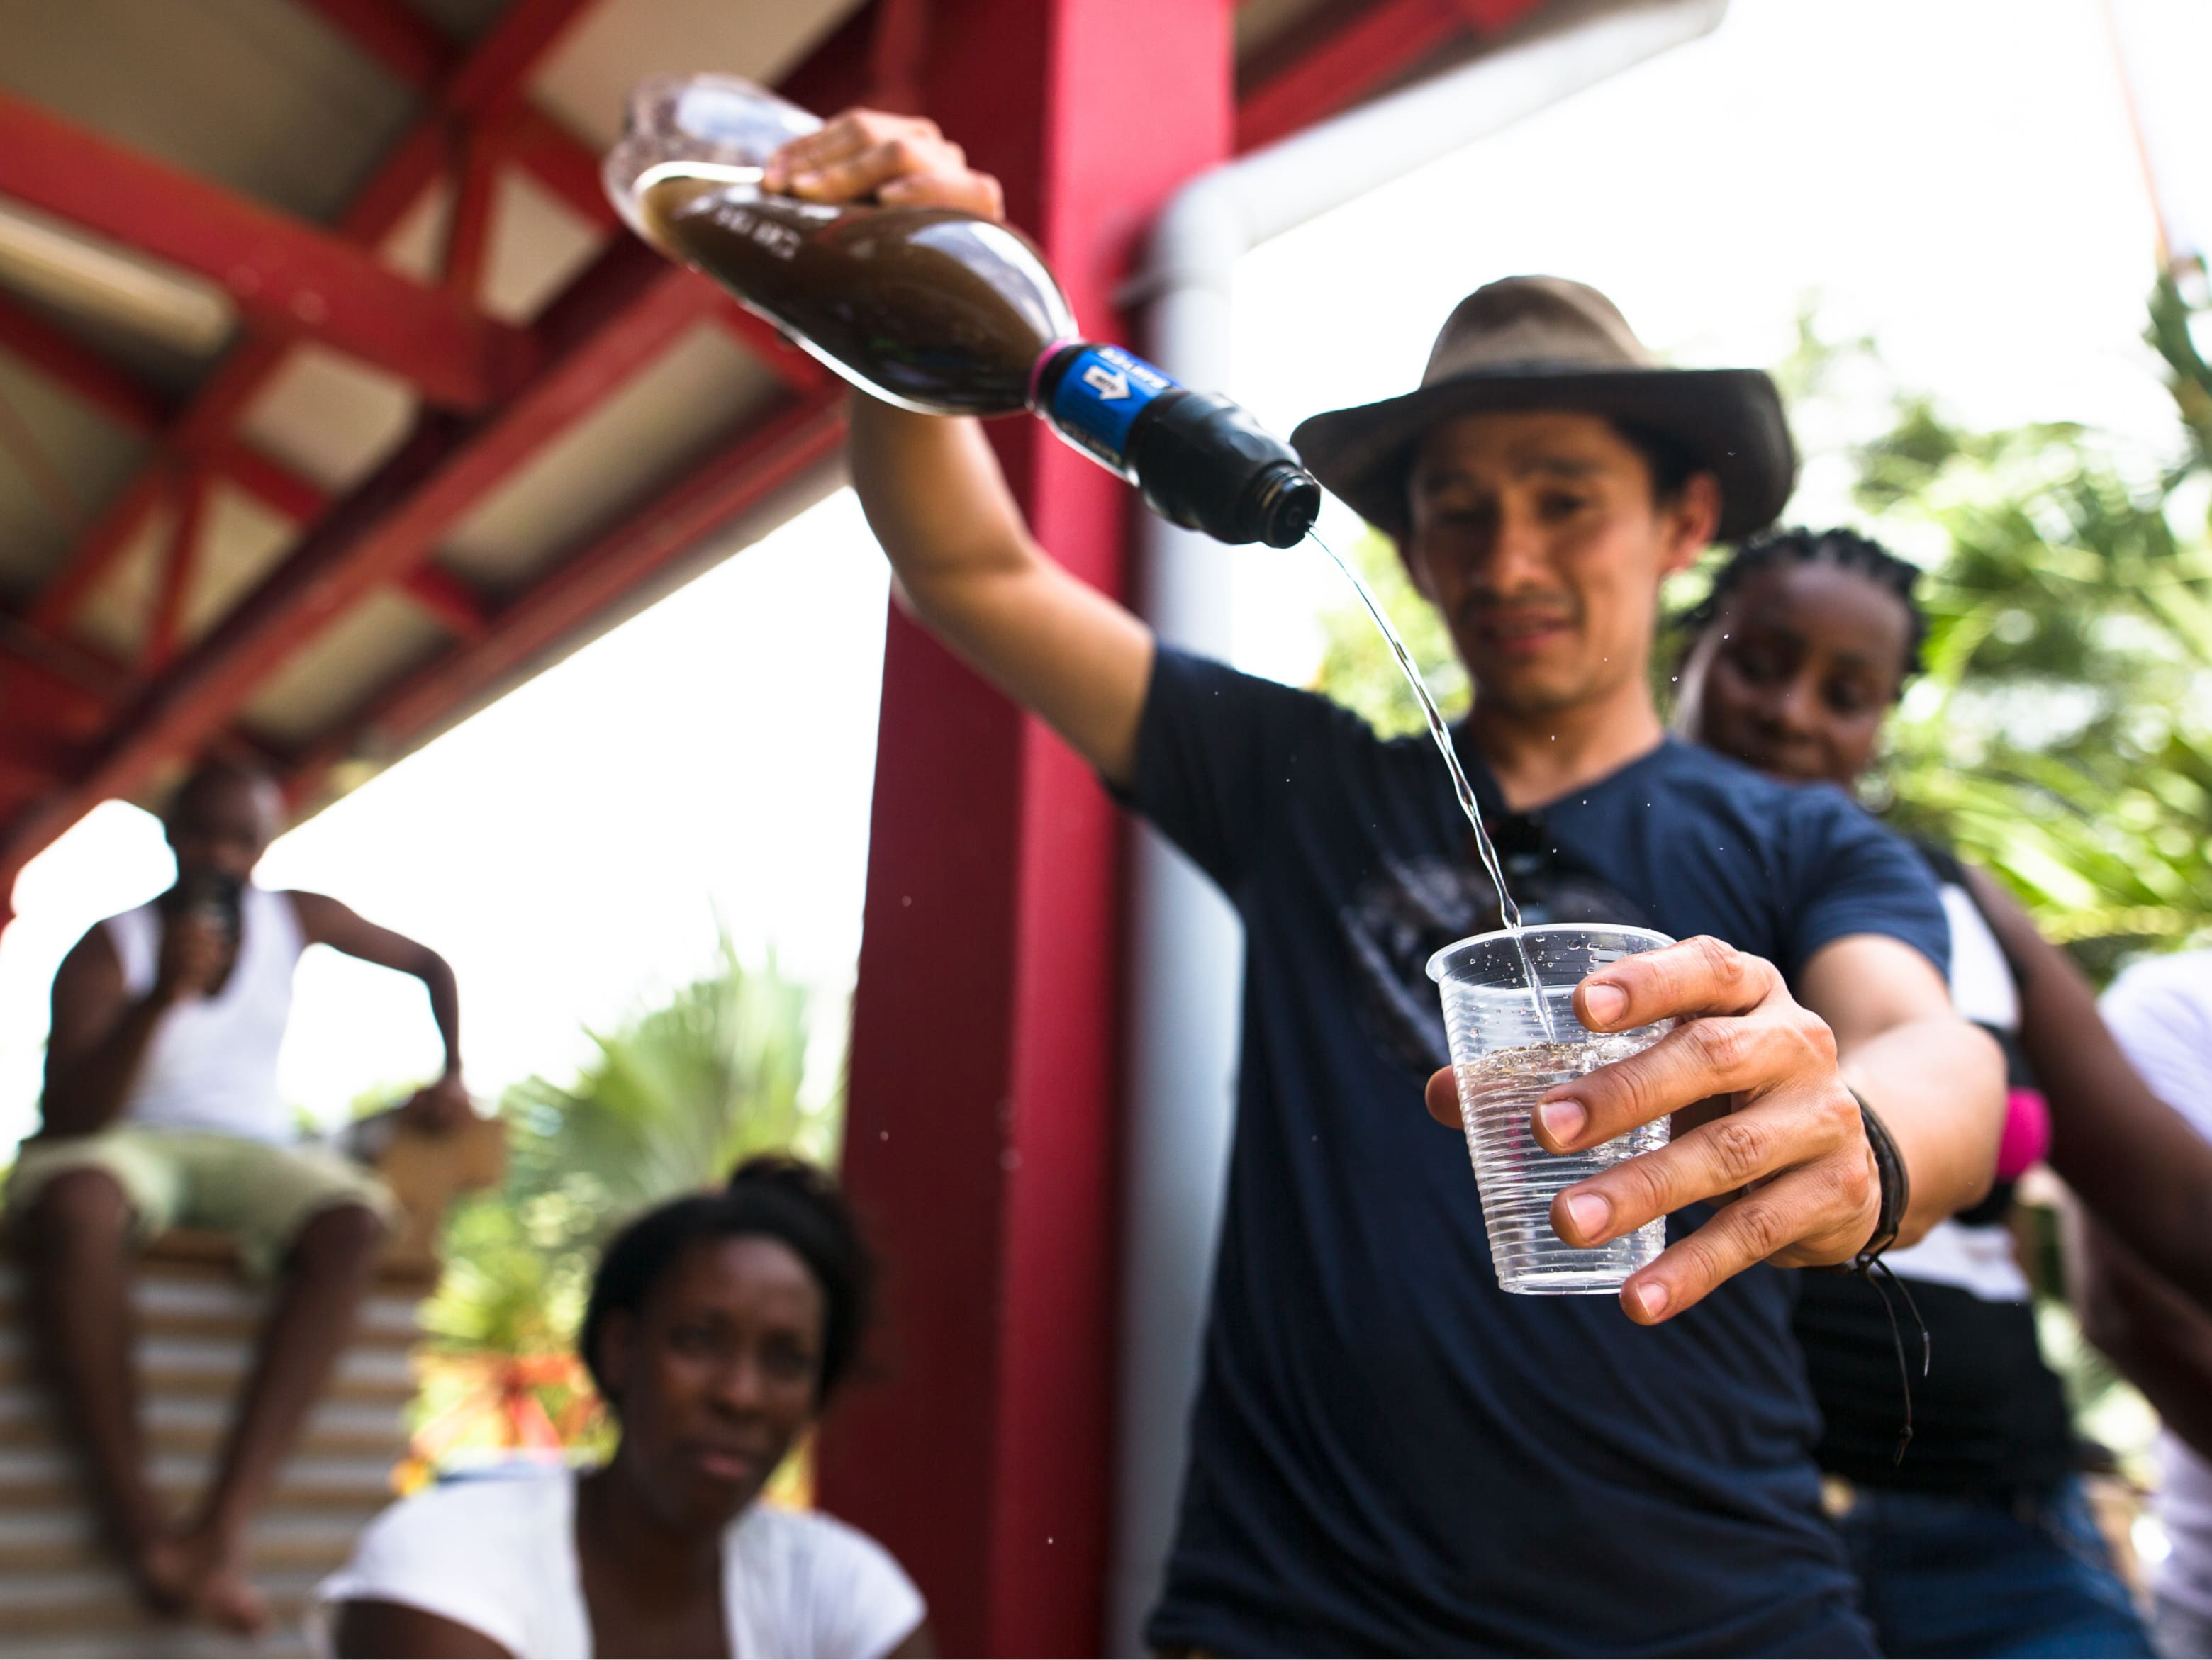 A Sawyer volunteer pours water from a Sawyer filter into a cup. The water in the filter is murky and what comes out is clear.